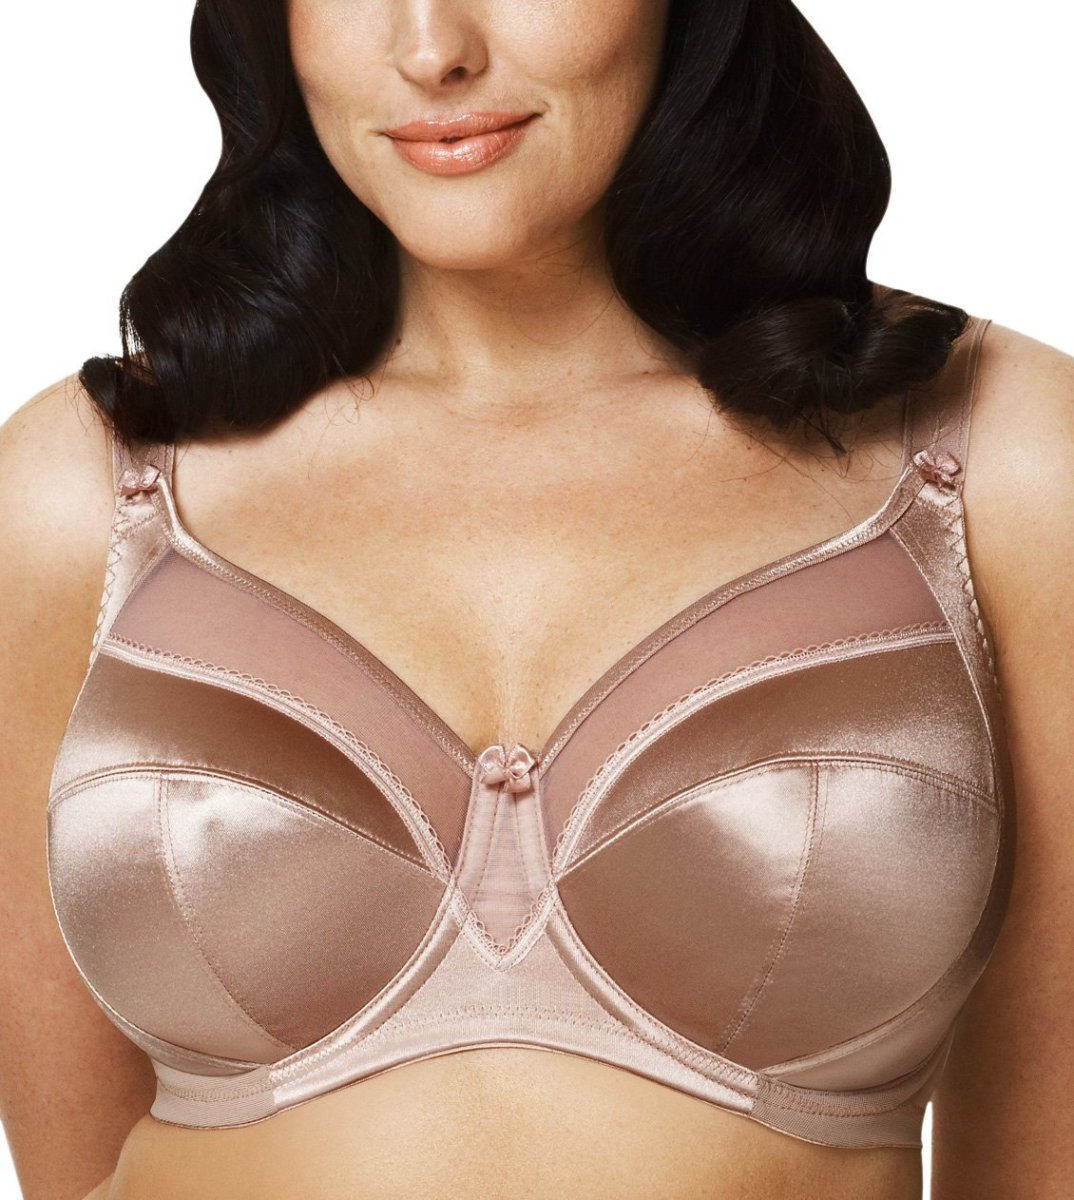 726ad561664 ... full figure bras. Best Bras for Large Breasts  Goddess Keira Banded  Underwire Bra